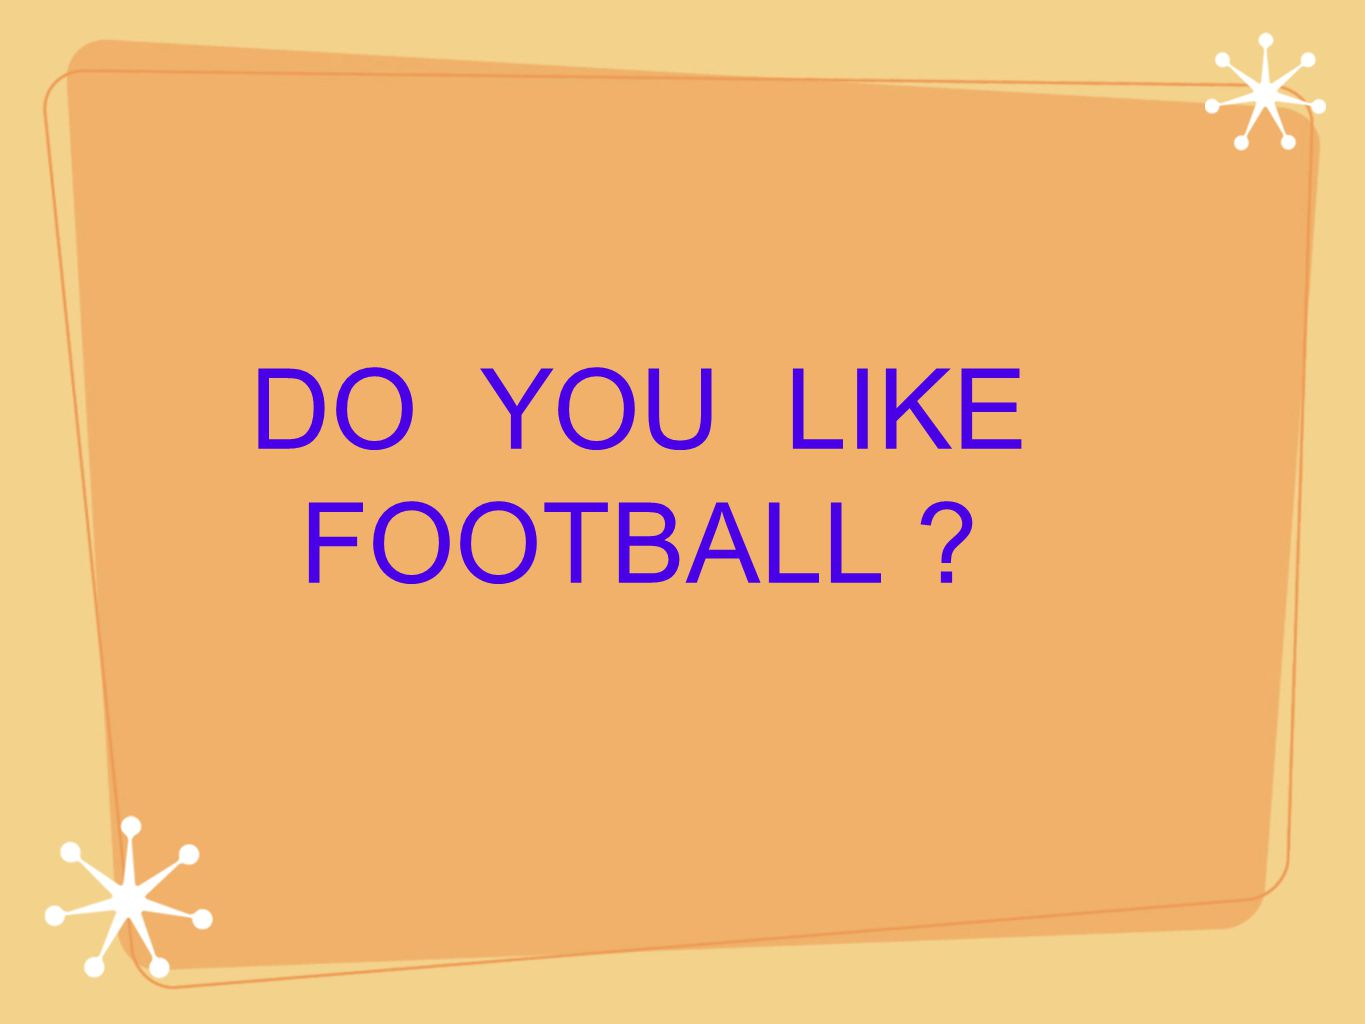 DO YOU LIKE FOOTBALL ?